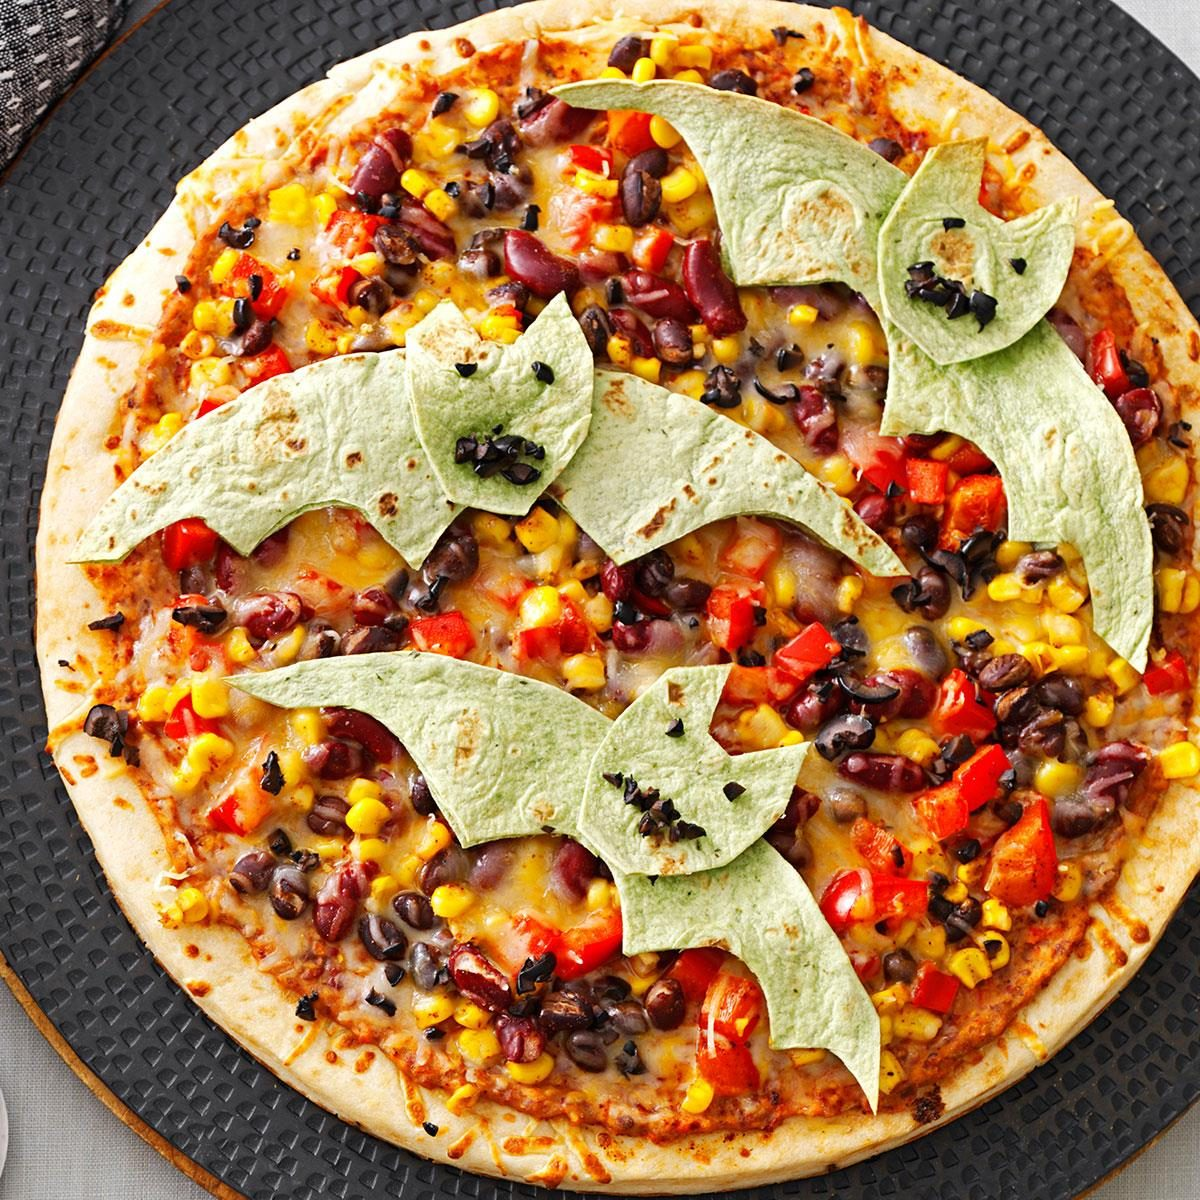 Halloween Dinner Recipes With Pictures.Flying Bat Pizzas